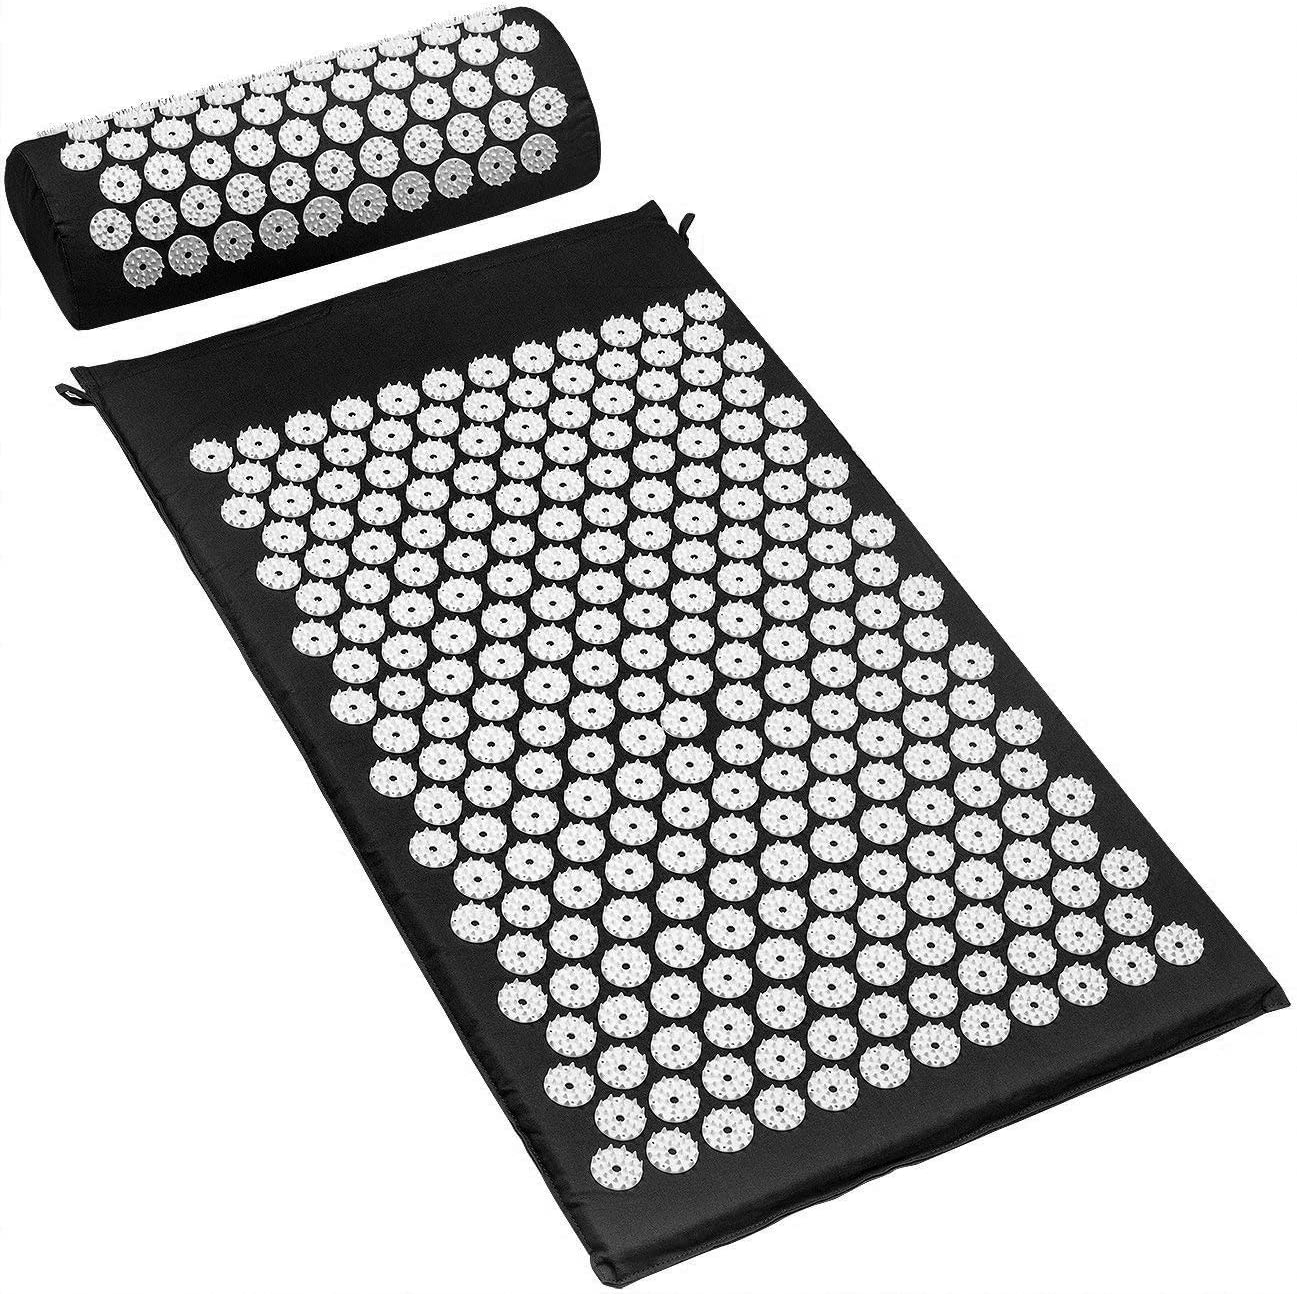 Sivan Back and Neck Pain Relief Acupressure Mat and Pillow Set, Chronic Back Pain Treatment - Relieves Your Stress of Lower Upper Back and Sciatic Pain - Black: Sports & Outdoors